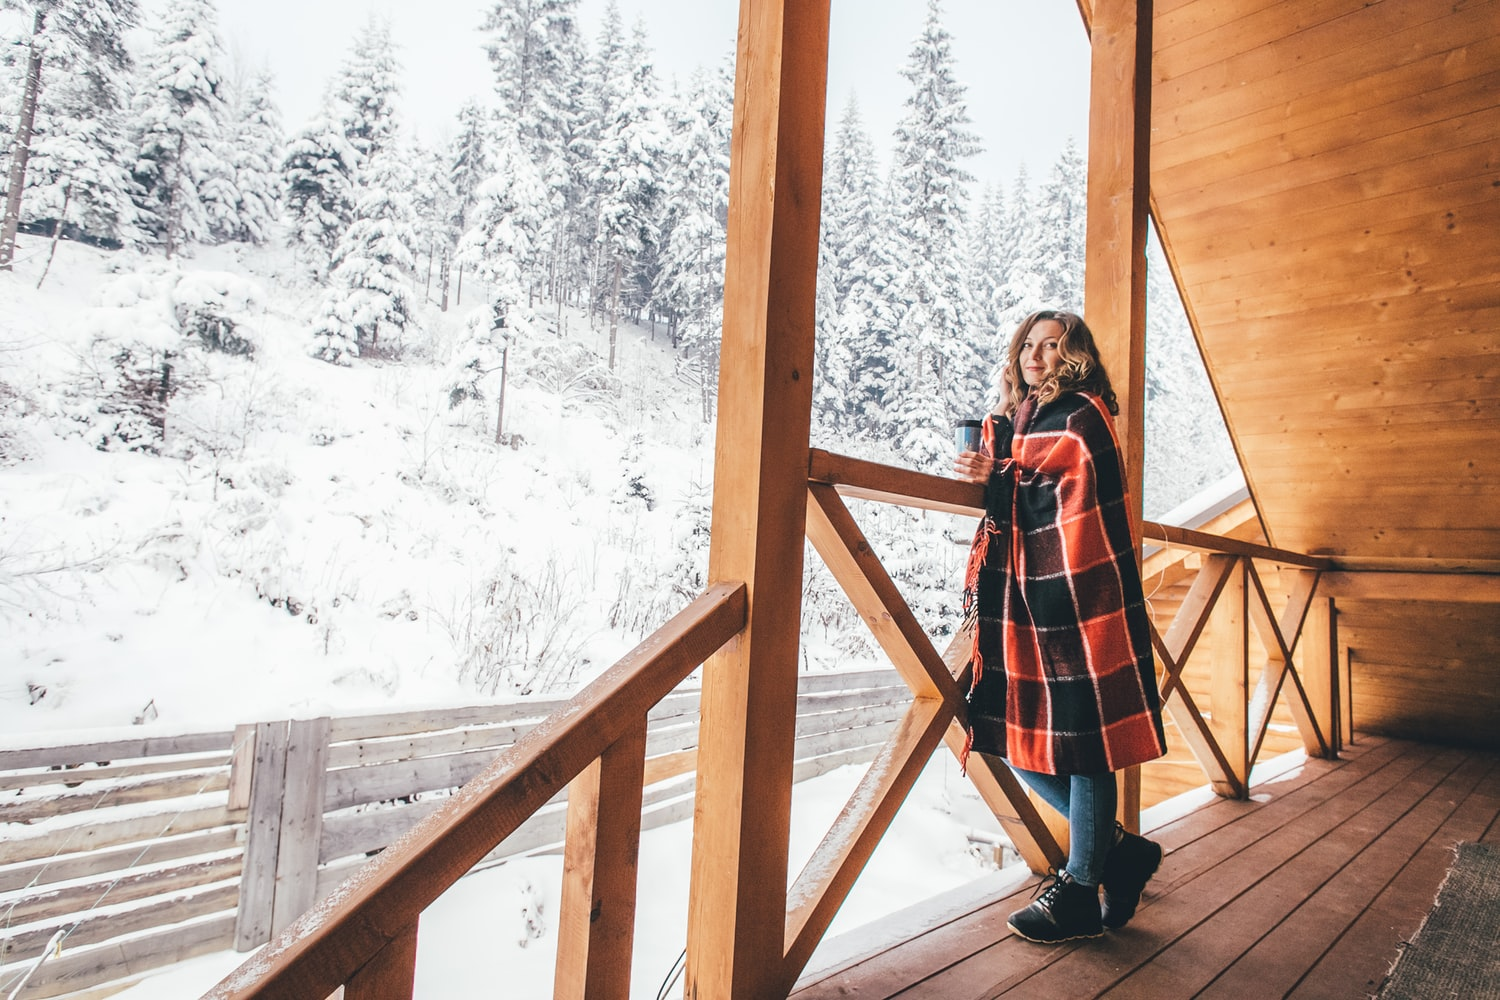 Mom wearing regular winter clothes in ski resort